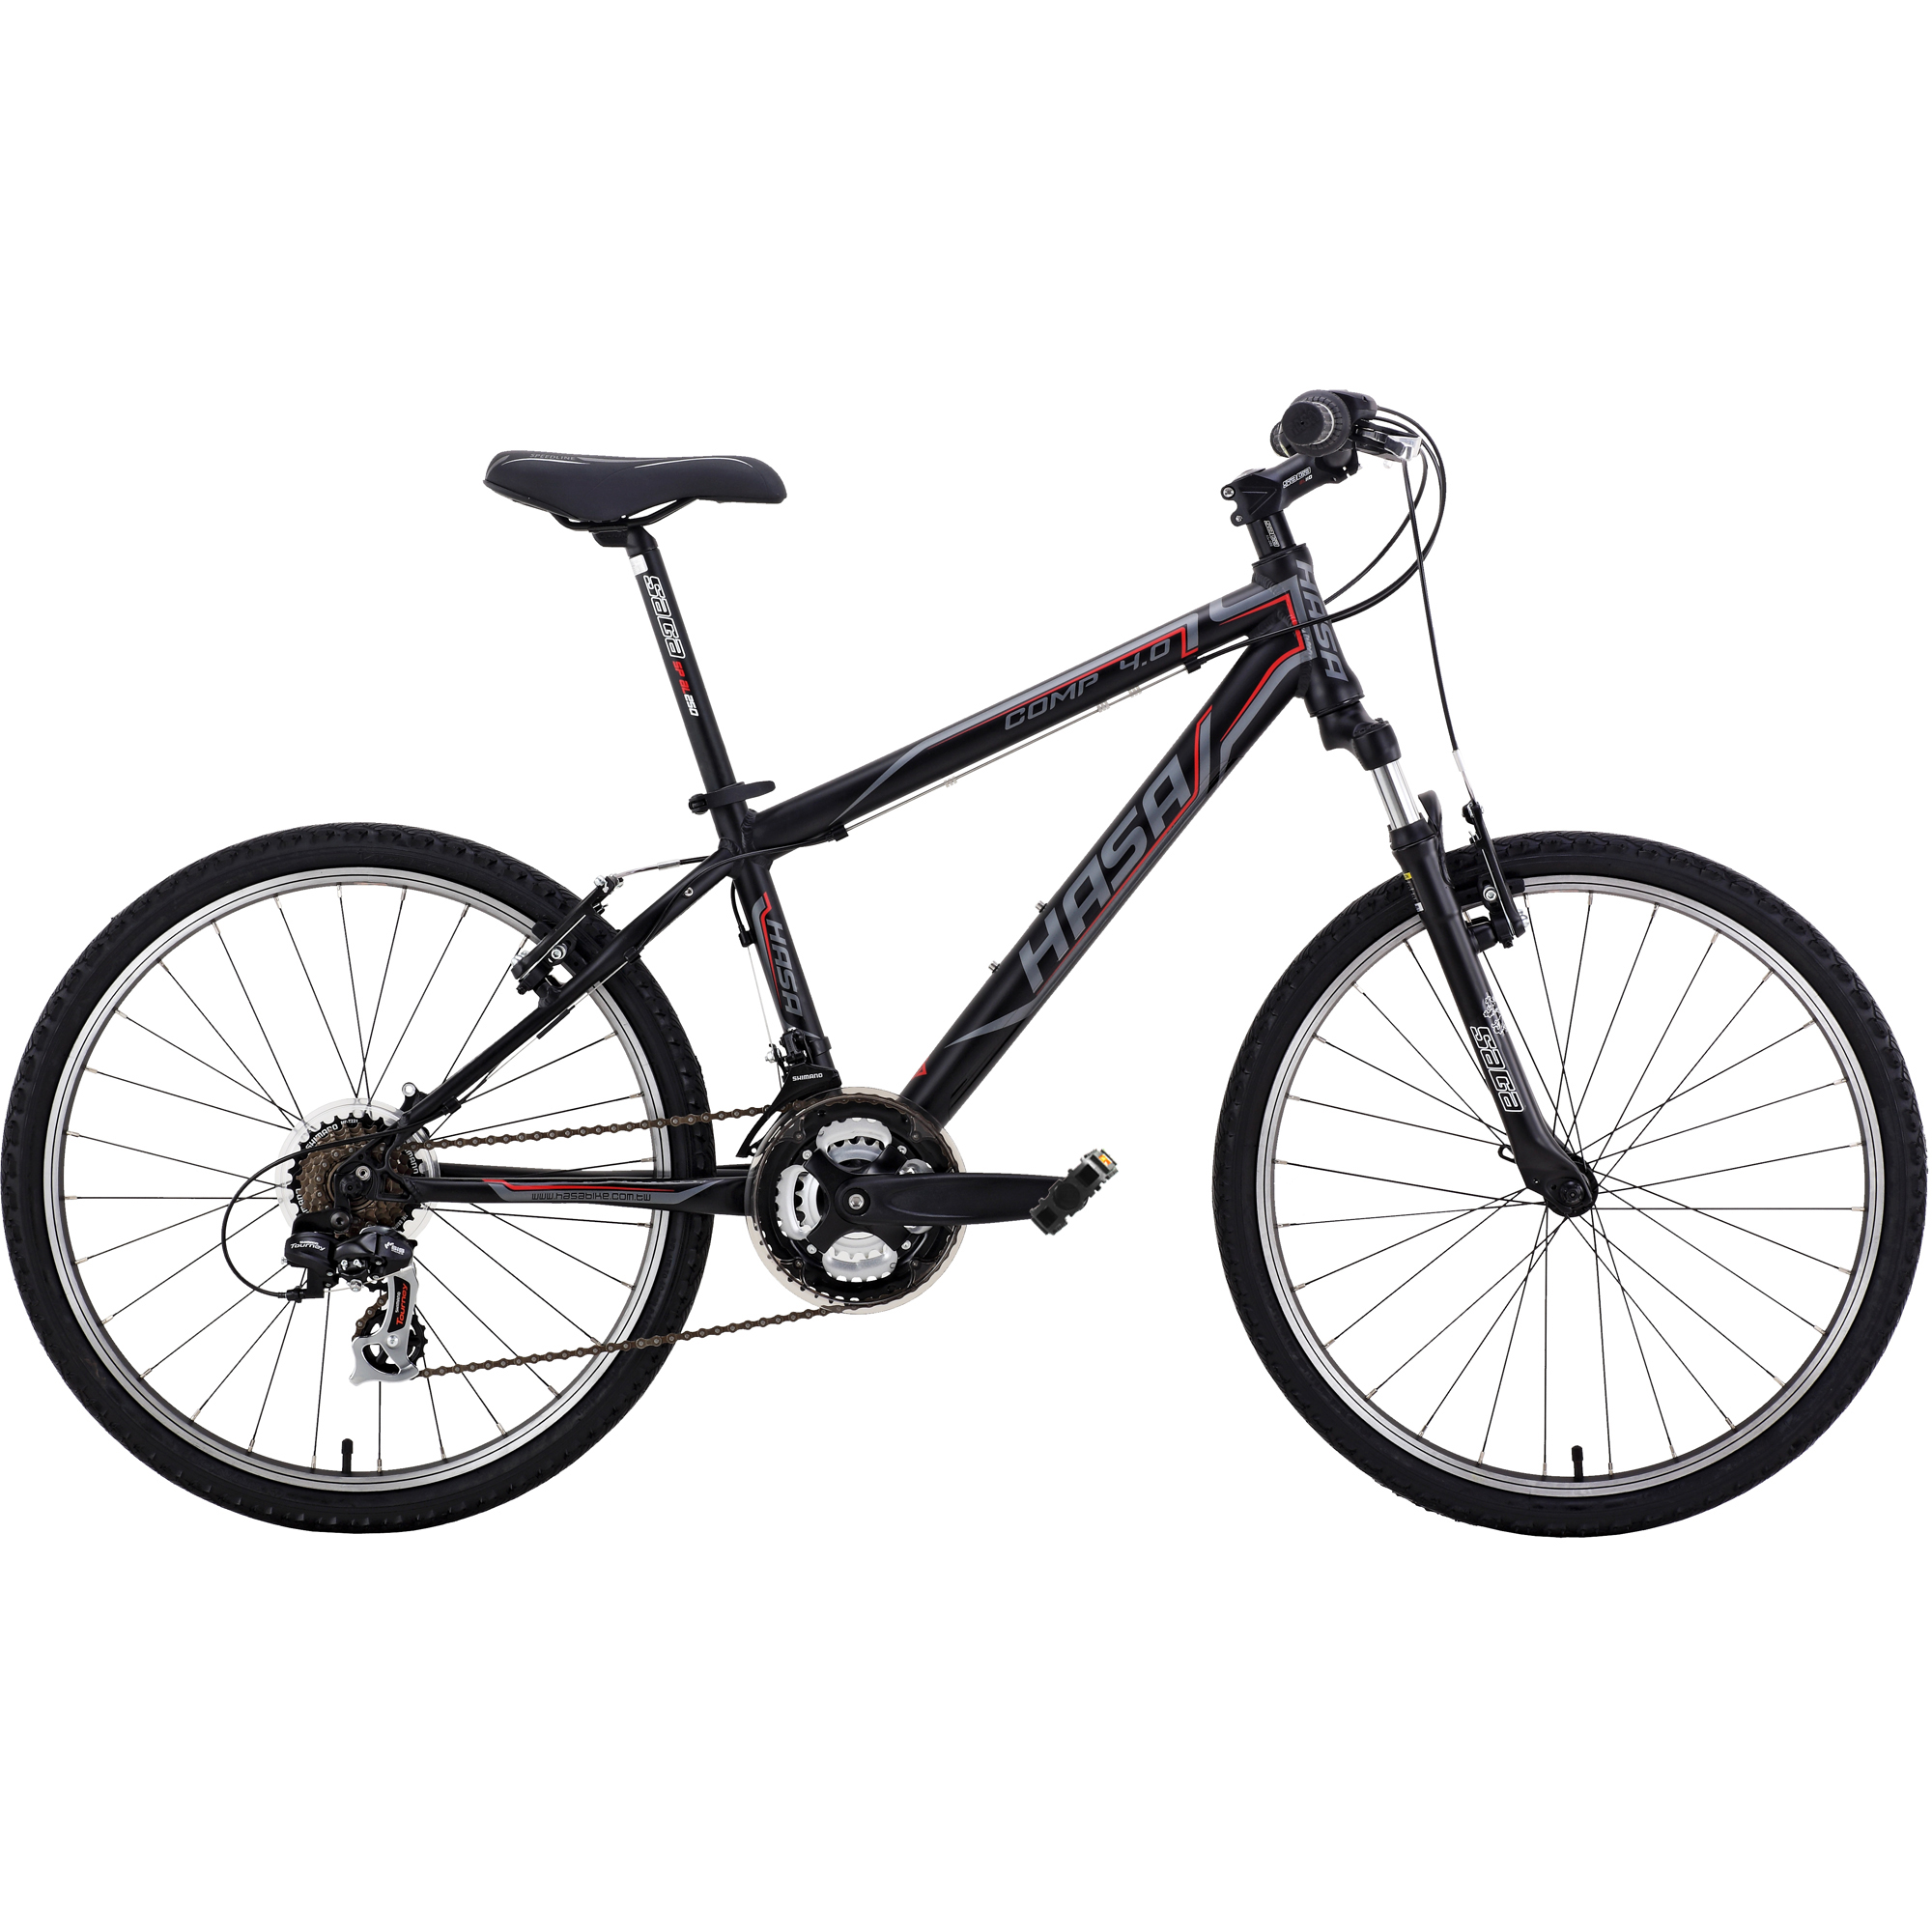 HASA Kids Mountain Bike Shimano 21 Speed 24 inch Alloy